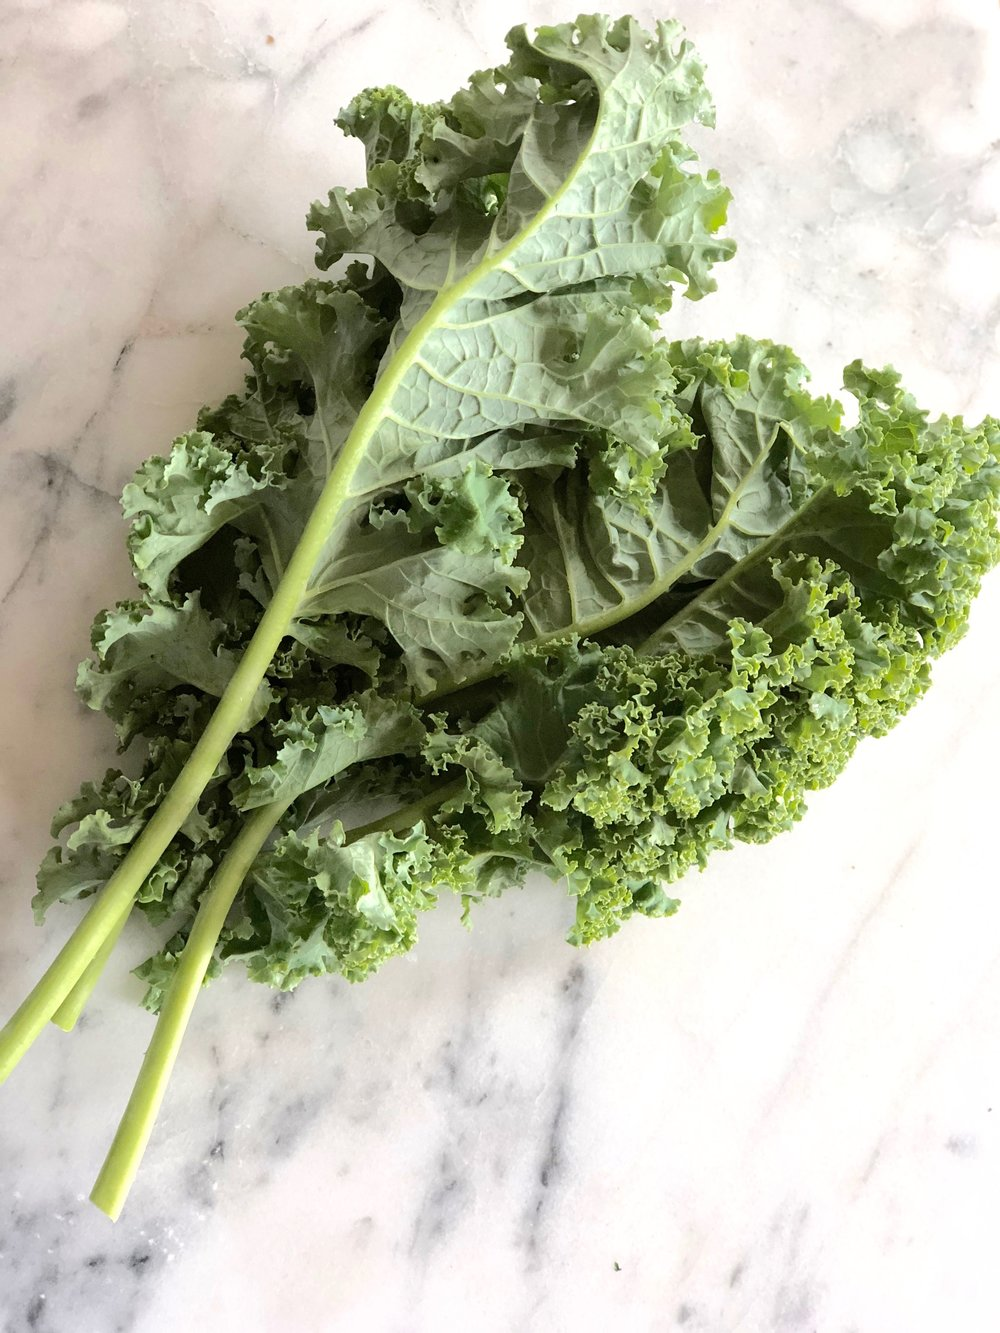 CURLY LEAF KALE  Courser variety, also comes in purple. The stem is much thicker, tear leaves off stem, after washing, massage into dressing, or use in soups, stir-frys and makes great kale chips.